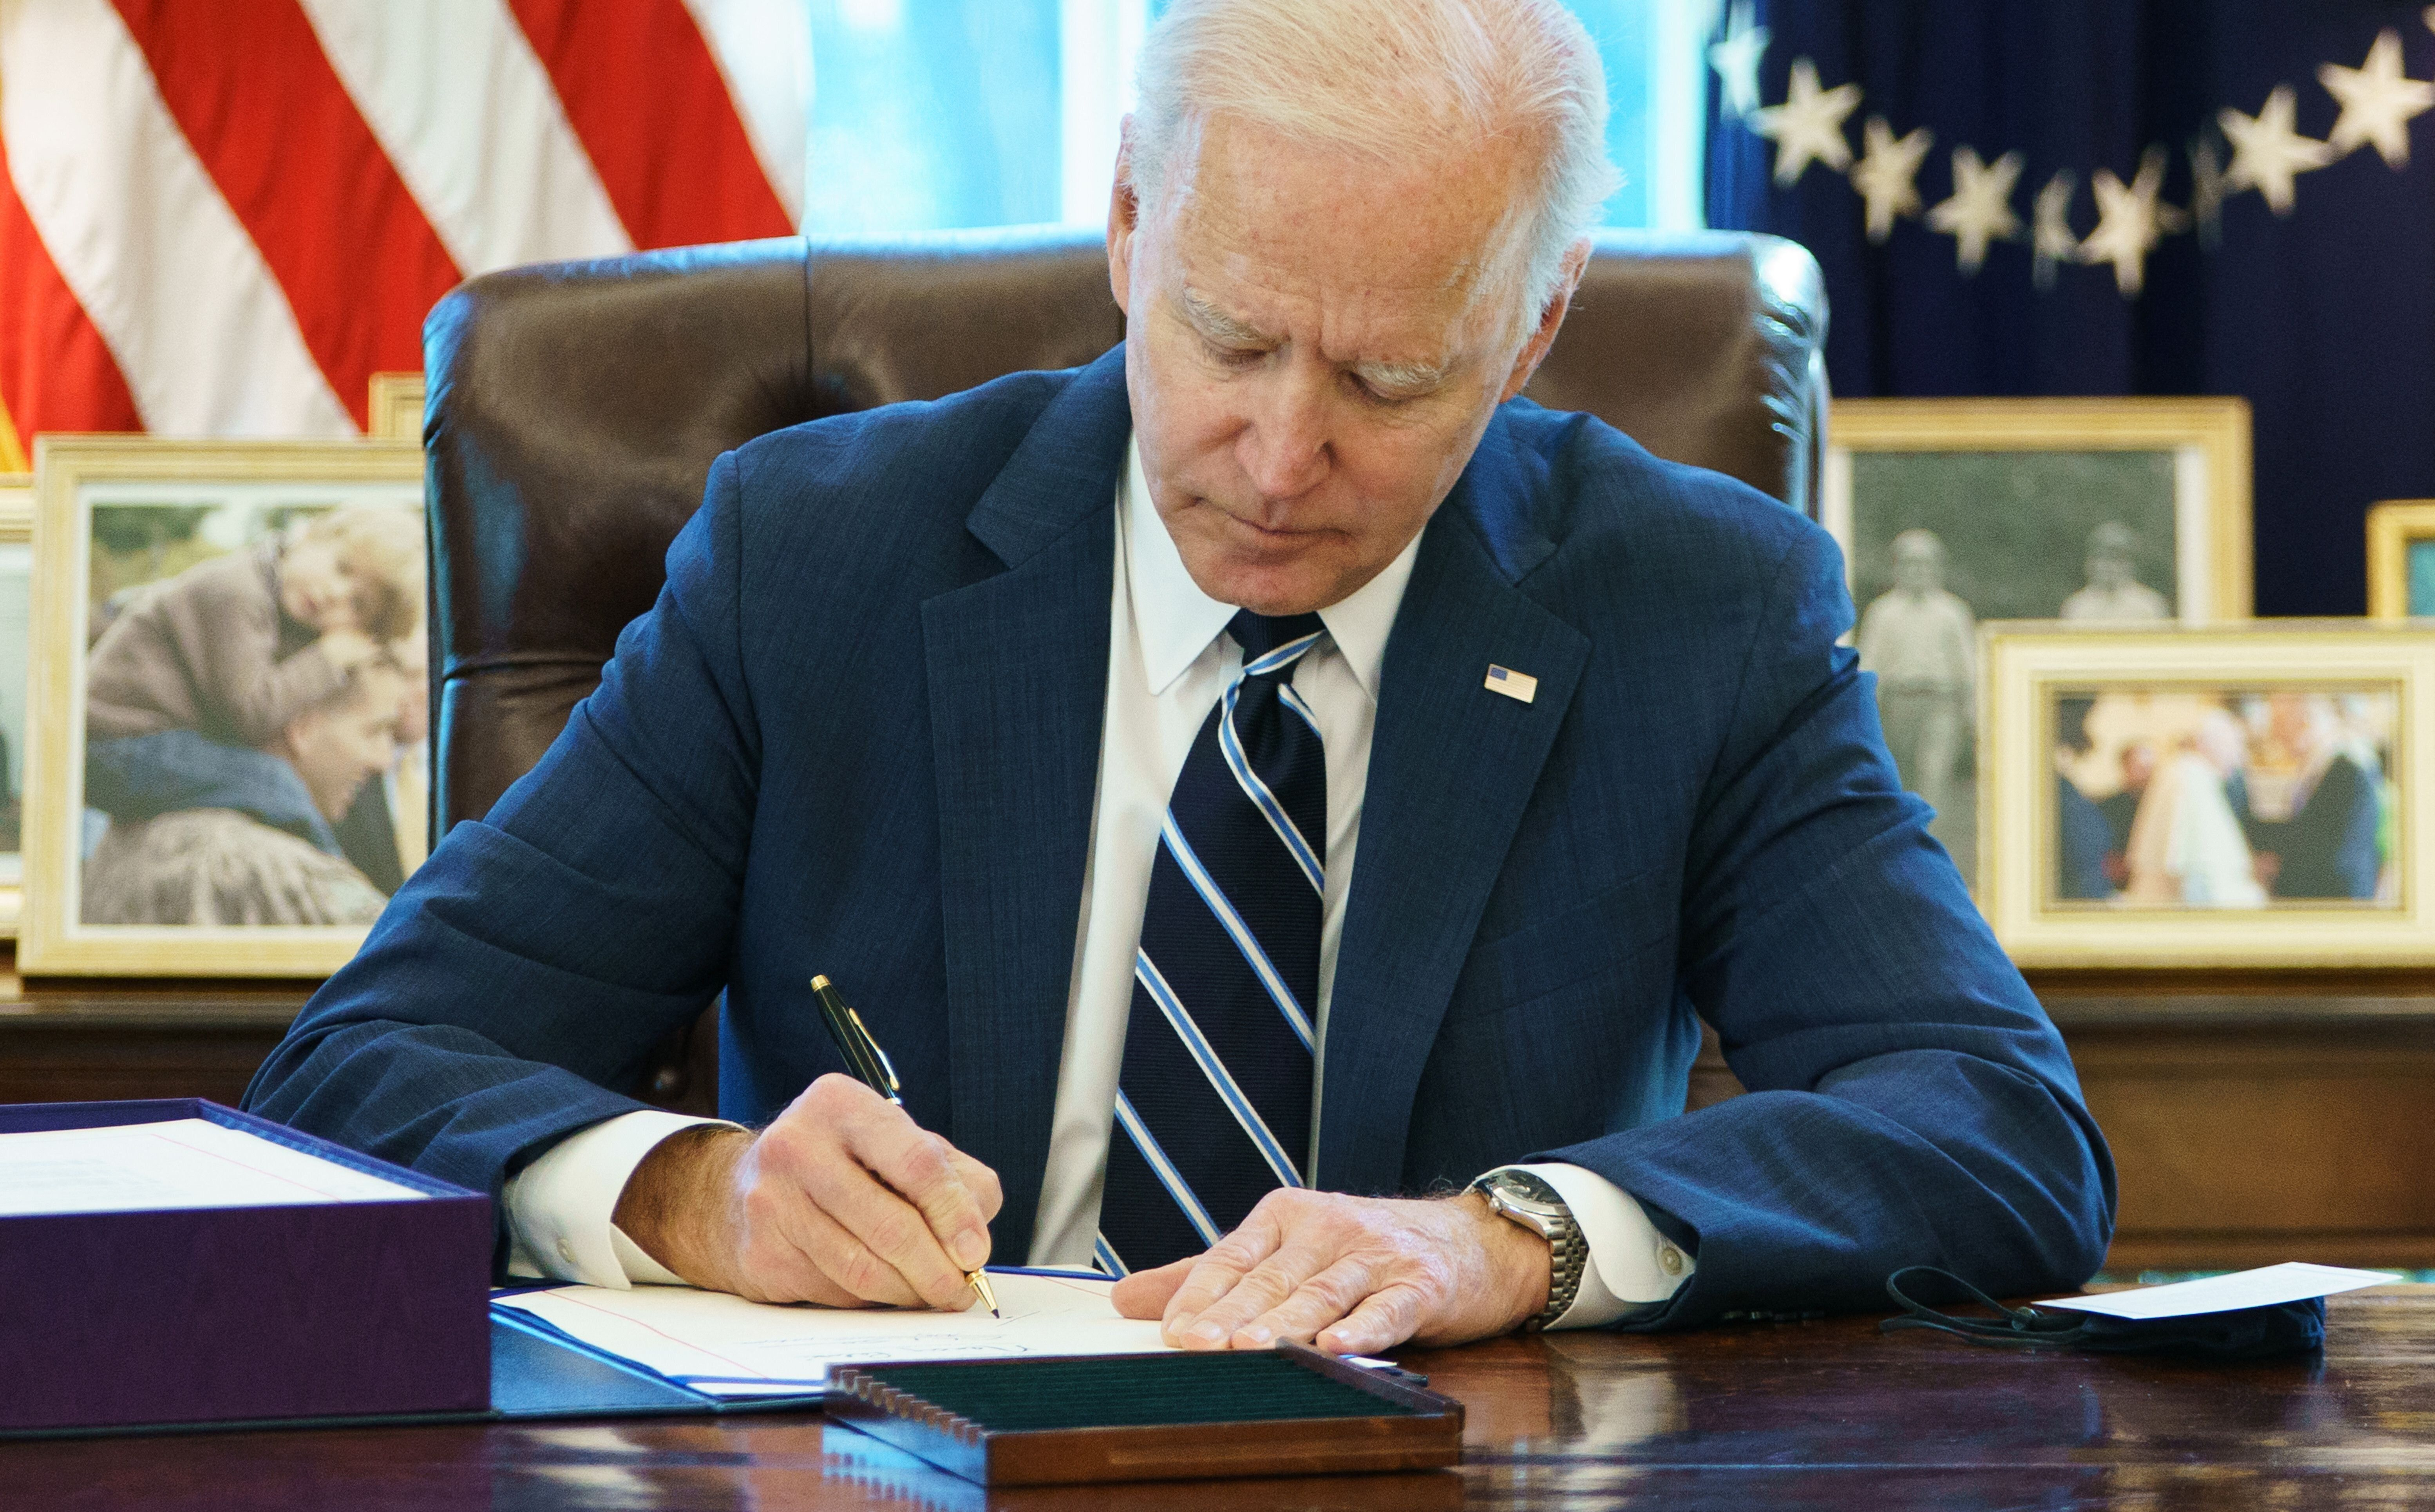 President Joe Biden signs the American Rescue Plan on March 11 in the Oval Office of the White House.